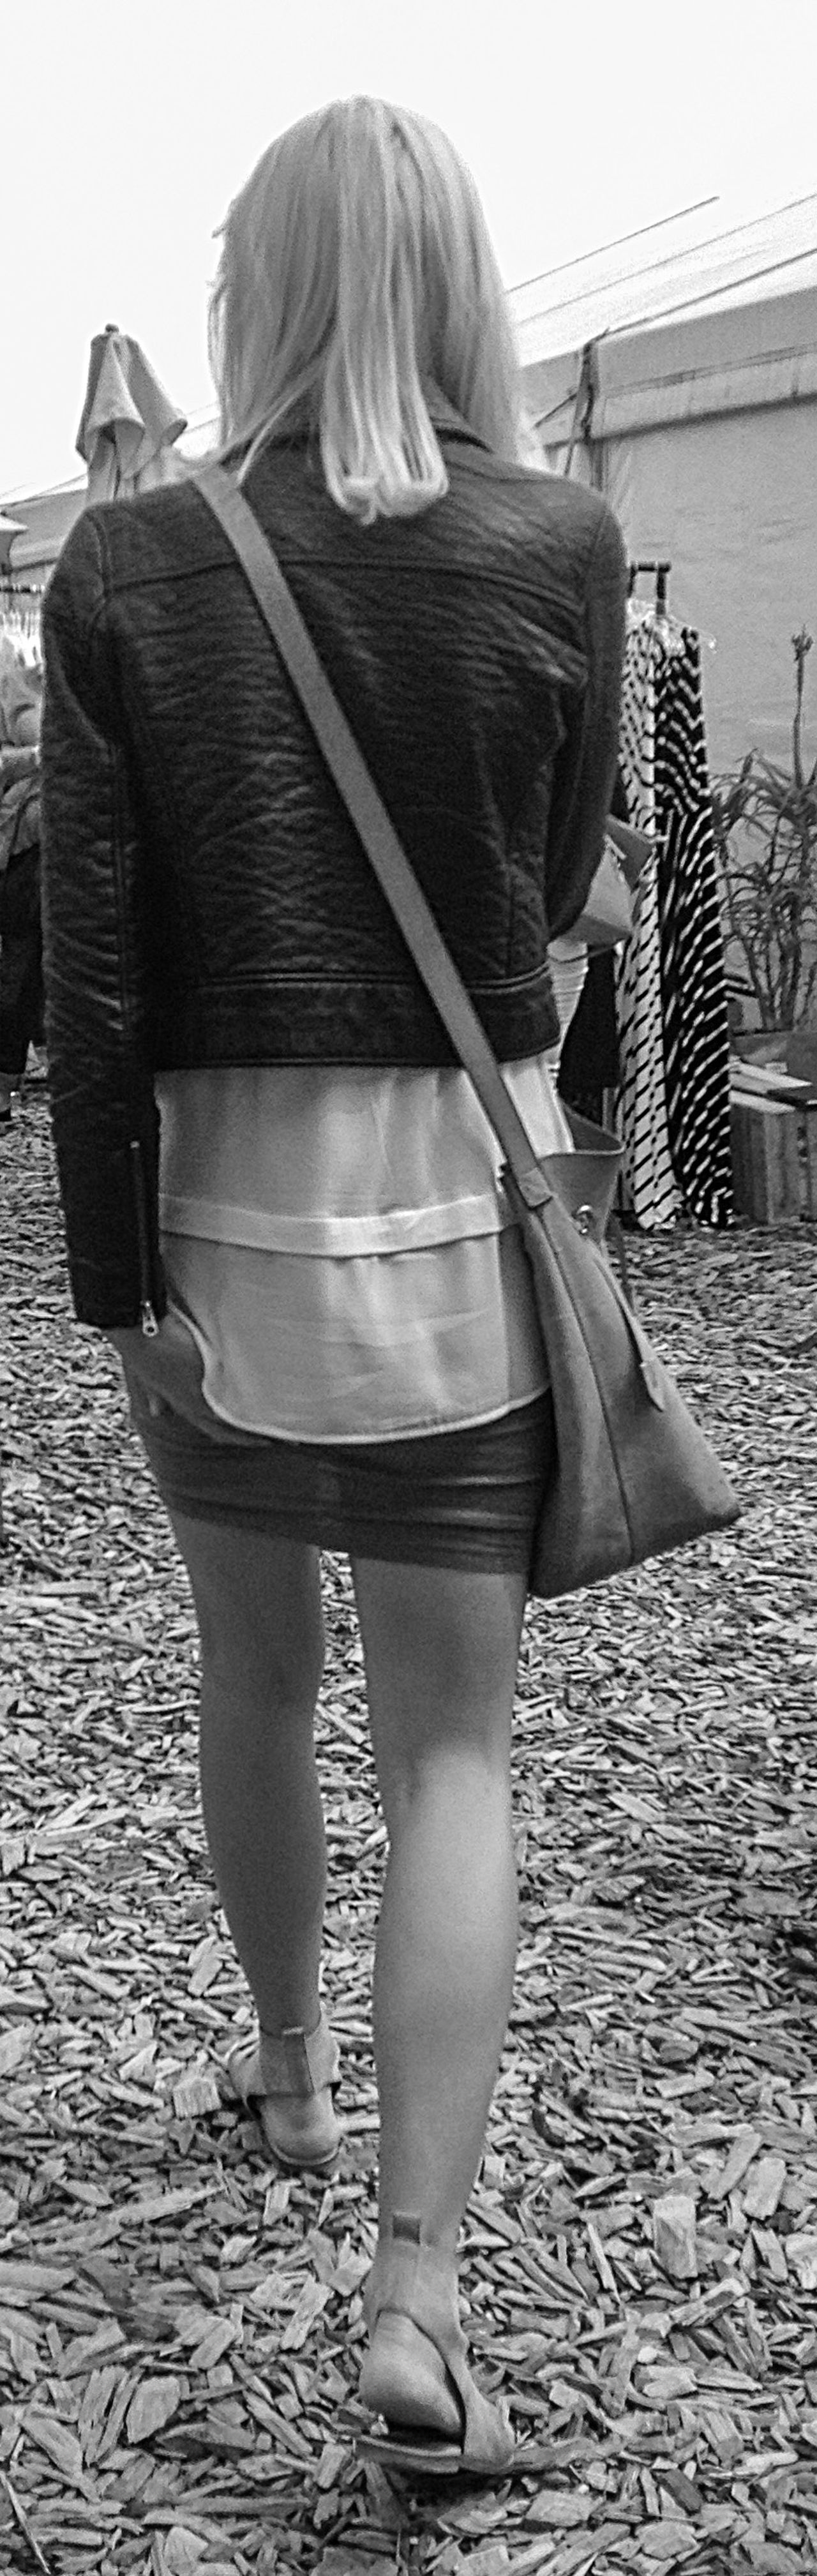 Blackandwhite Candid Cropped Full Length Leather Jacket Legs Rear View Sandals Streetfashion Streetphotography